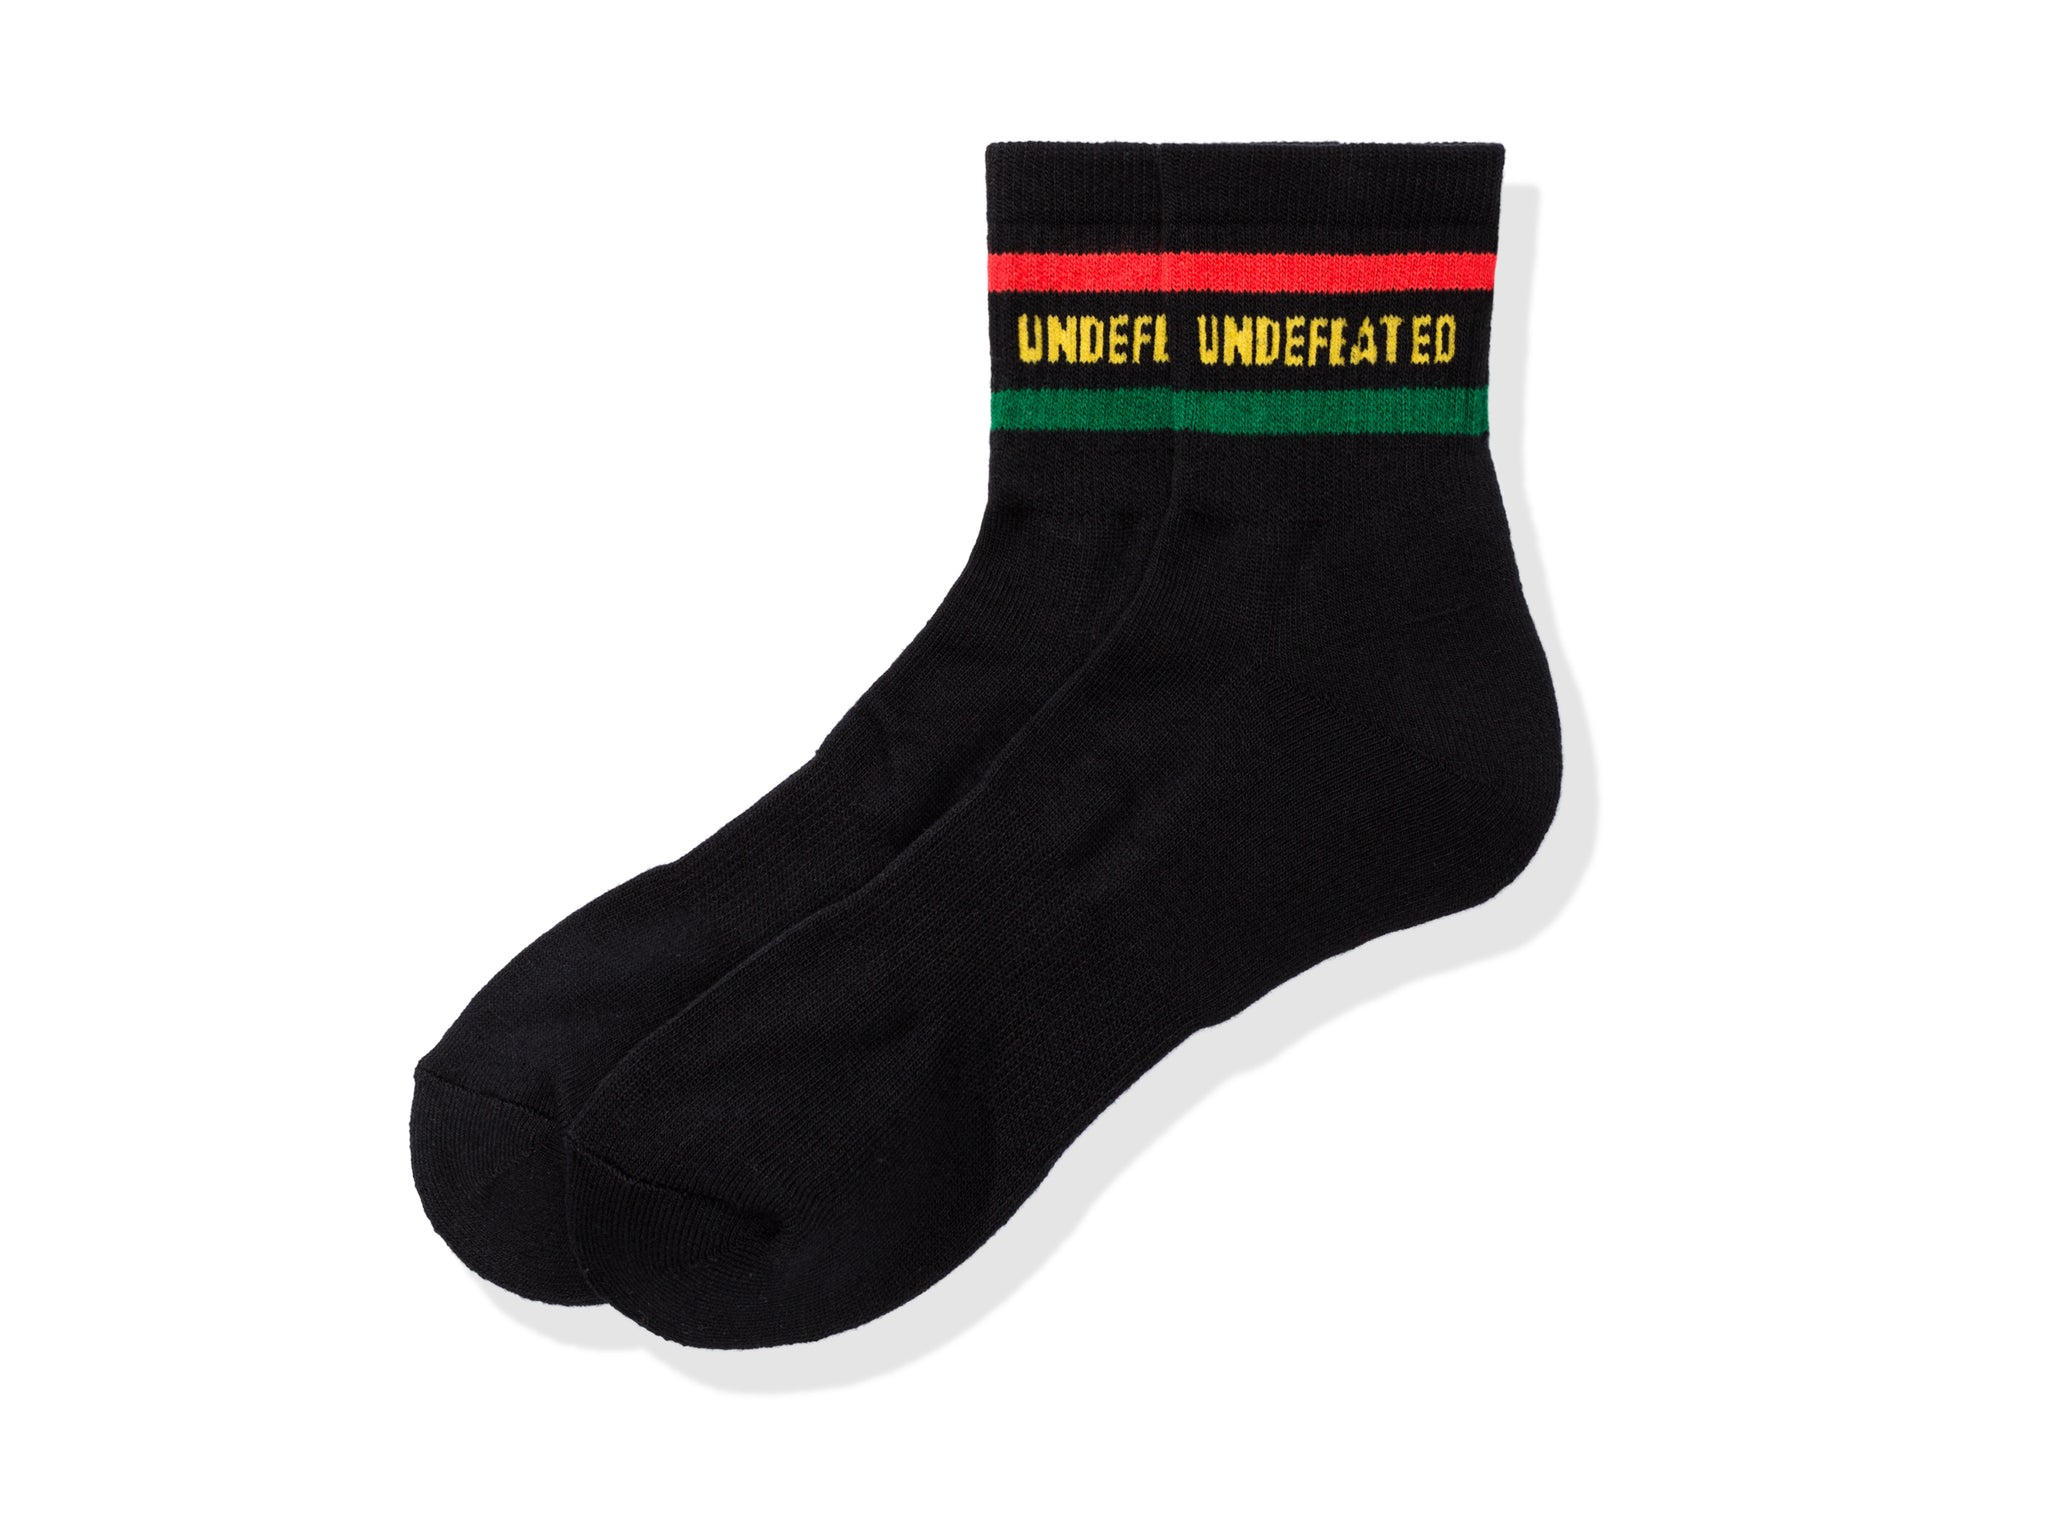 UNDEFEATED LOGO SOCK - QUARTER